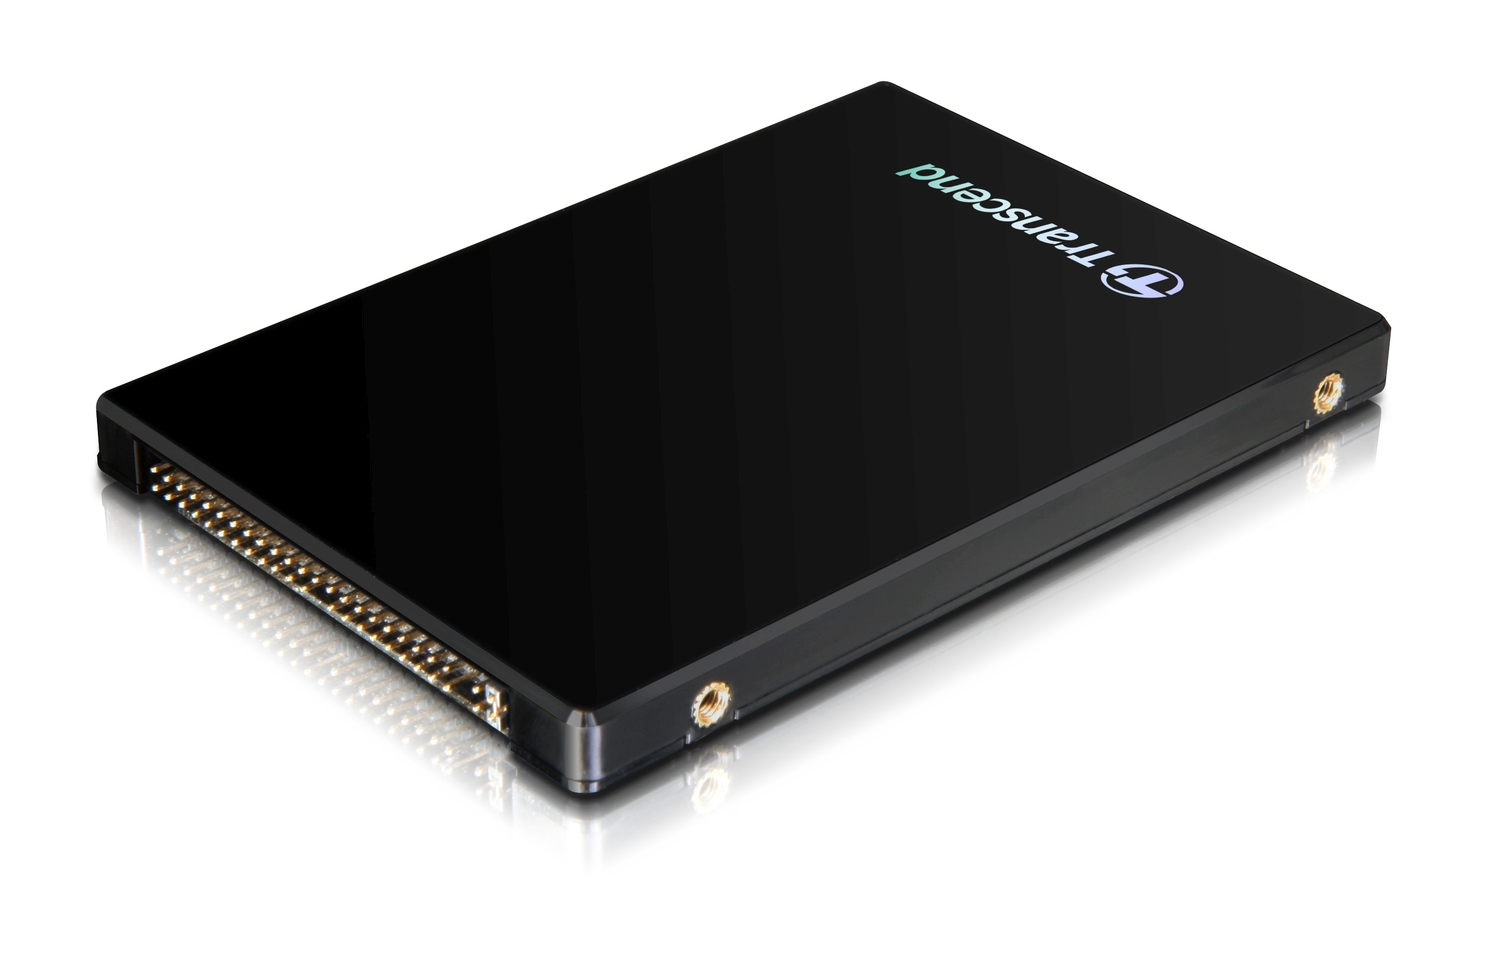 "TRANSCEND SSD520 32GB SSD disk 2.5"" IDE 44 pin PATA, SLC - TS32GPSD520"